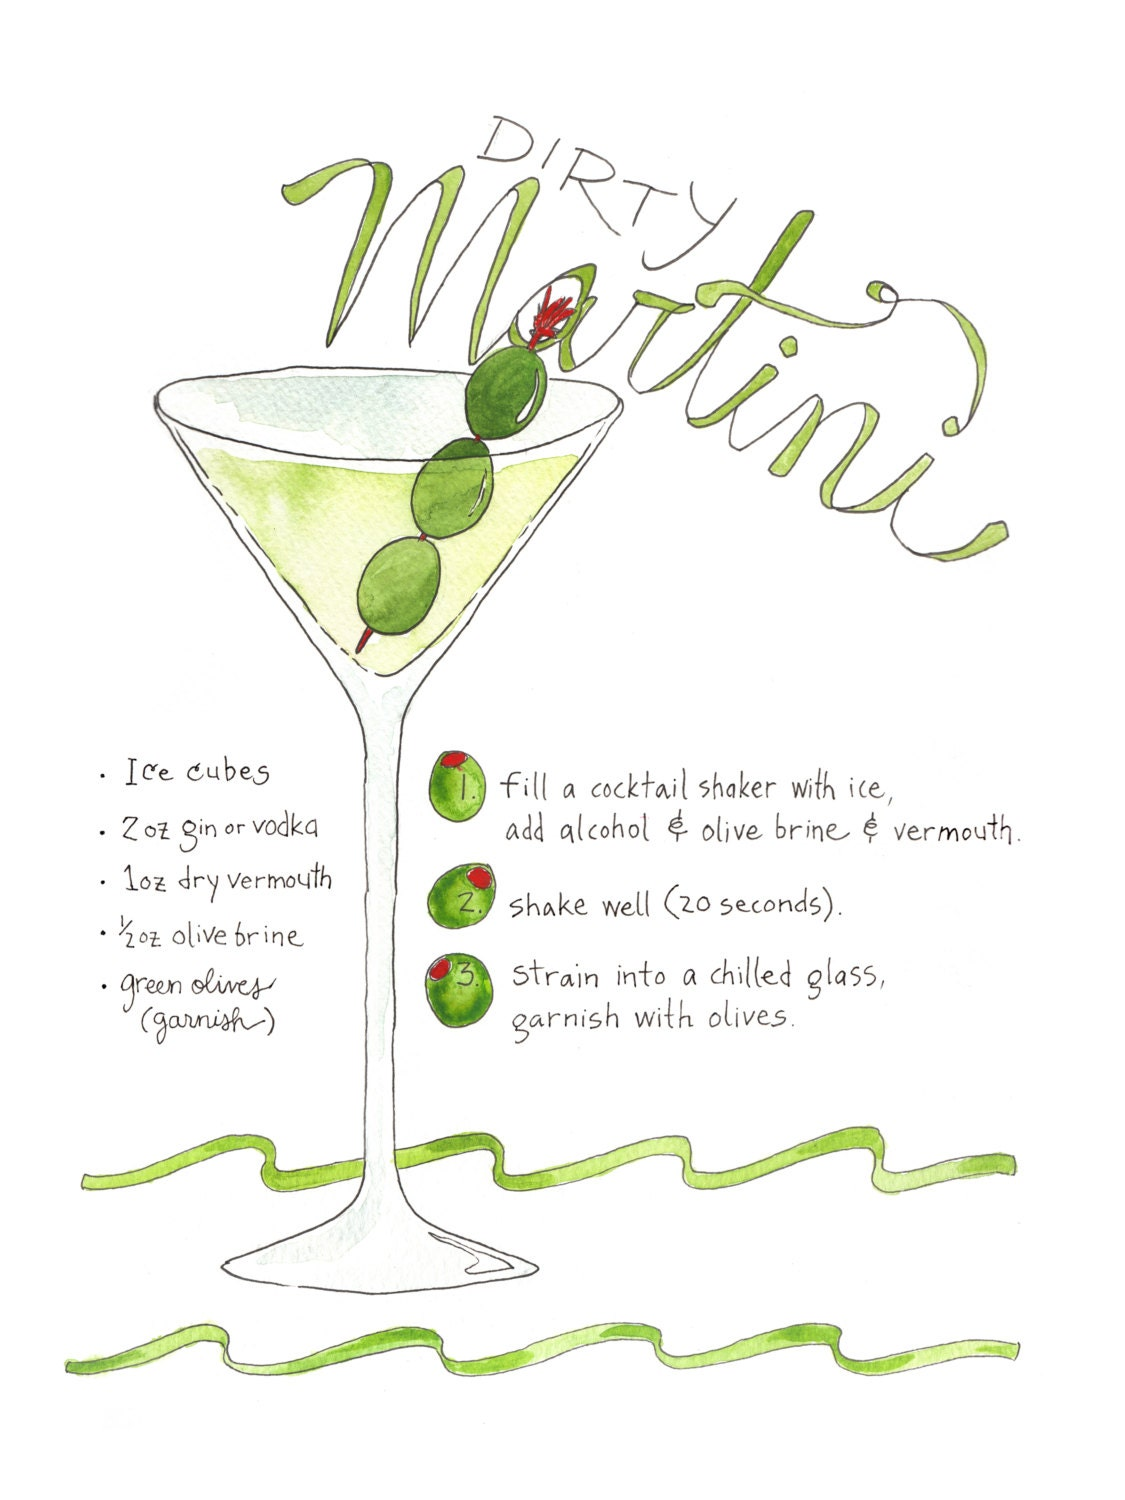 Sep 02,  · This is my vodka dirty martini recipe! It's perfect with a wonderful balance of vodka, vermouth and olive brine!! It is a re-do recipe of one of my first posts.5/5(2).